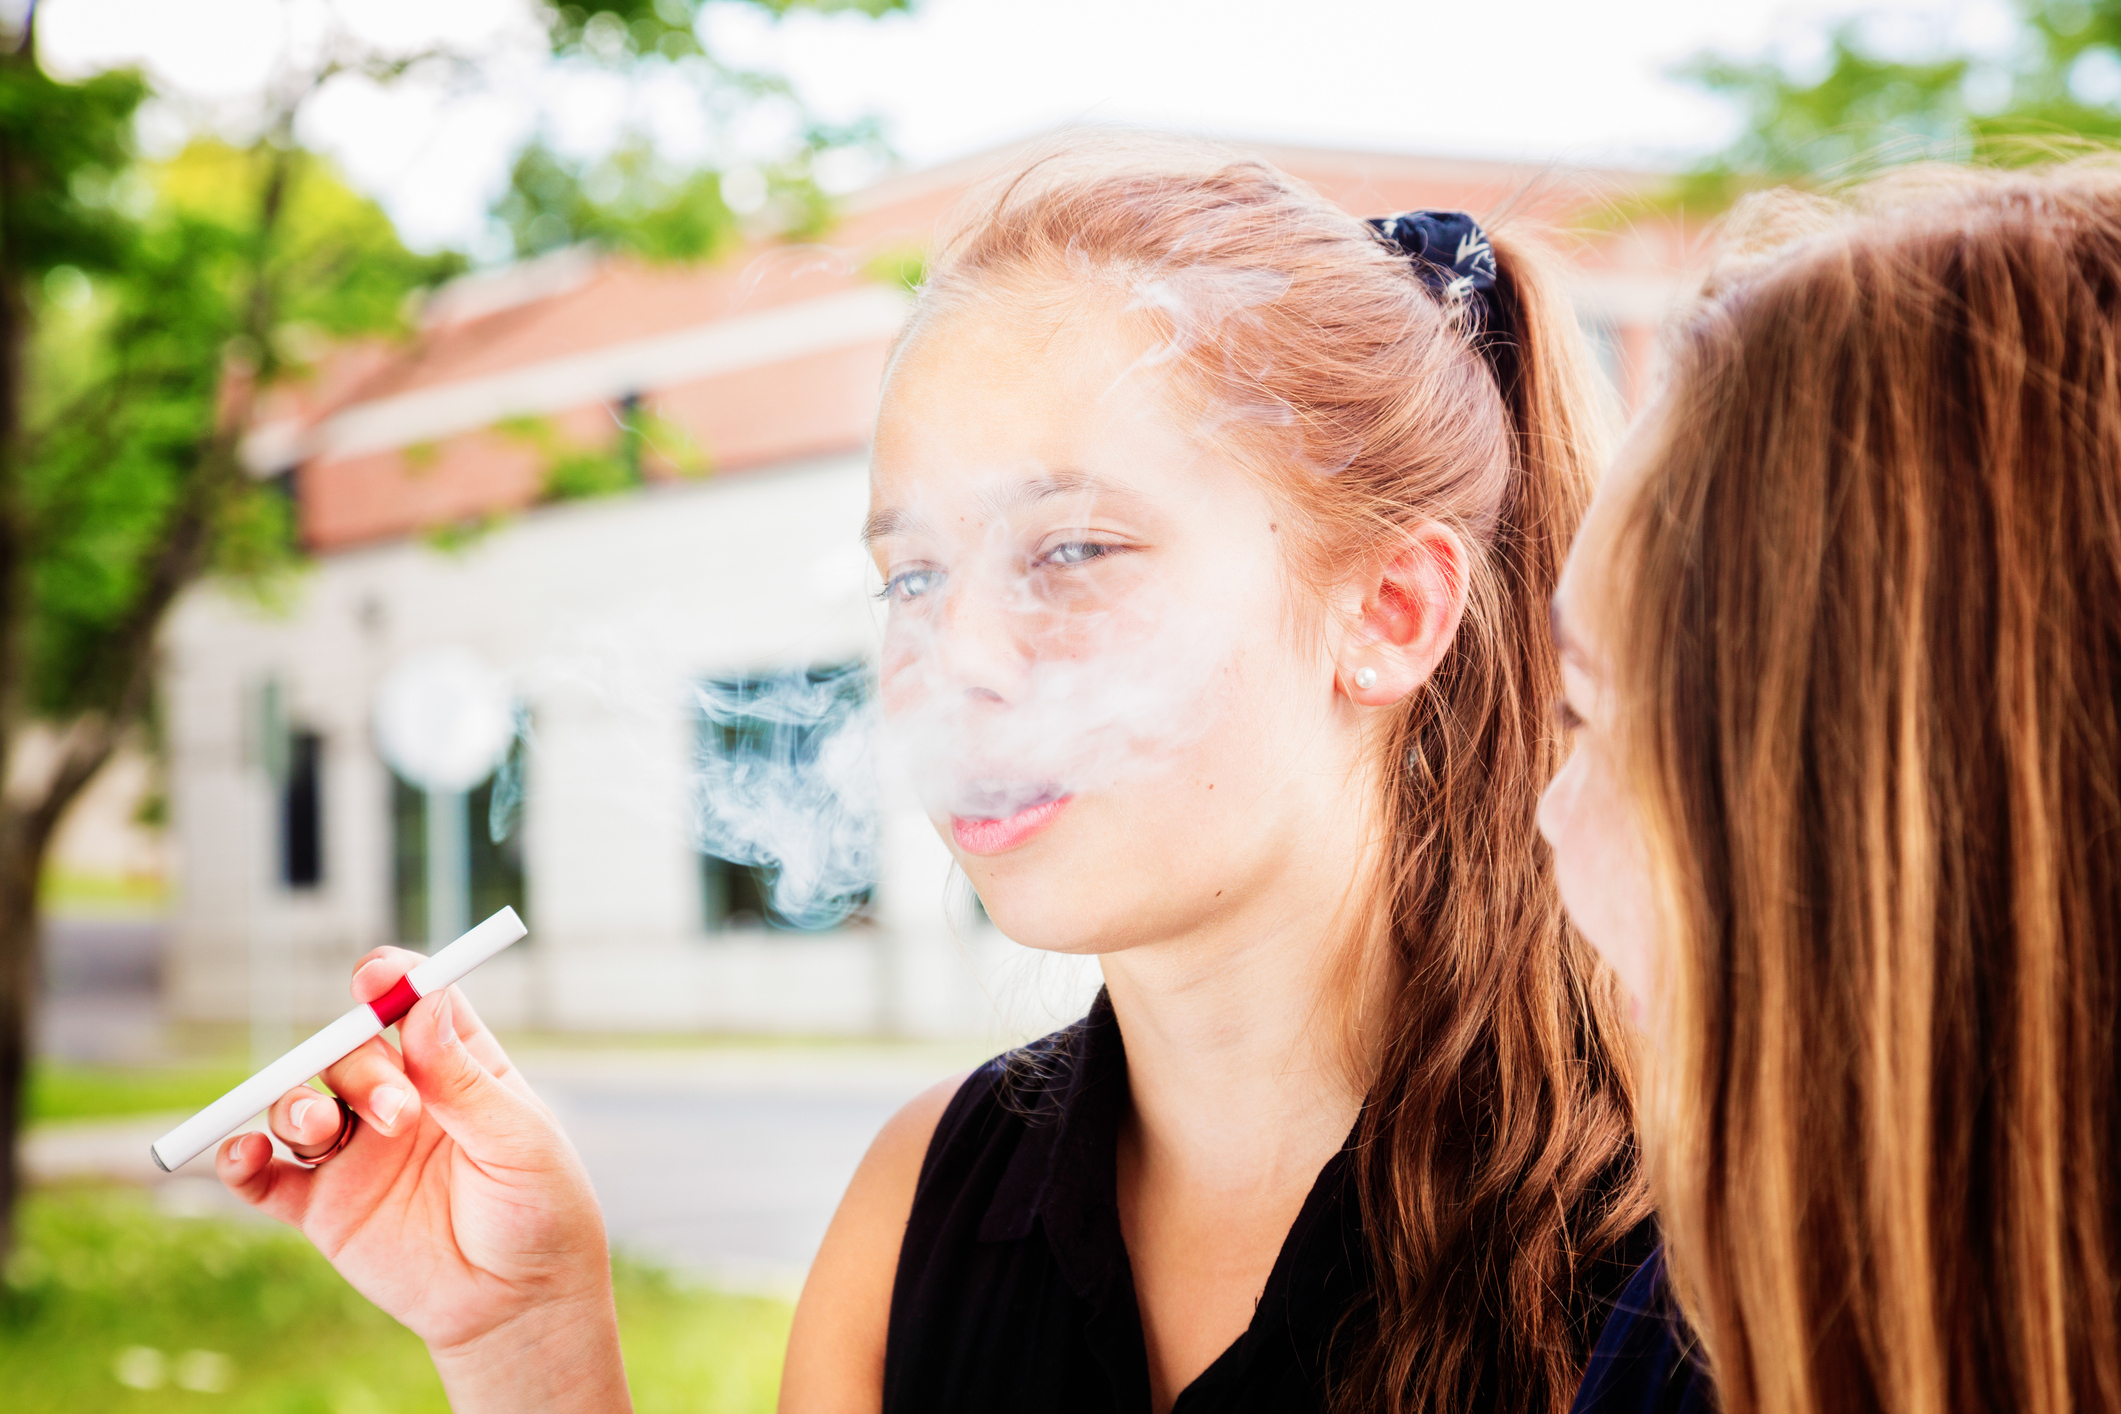 Since 2011, E-Cigarette Use Among Adolescents Increased 900%